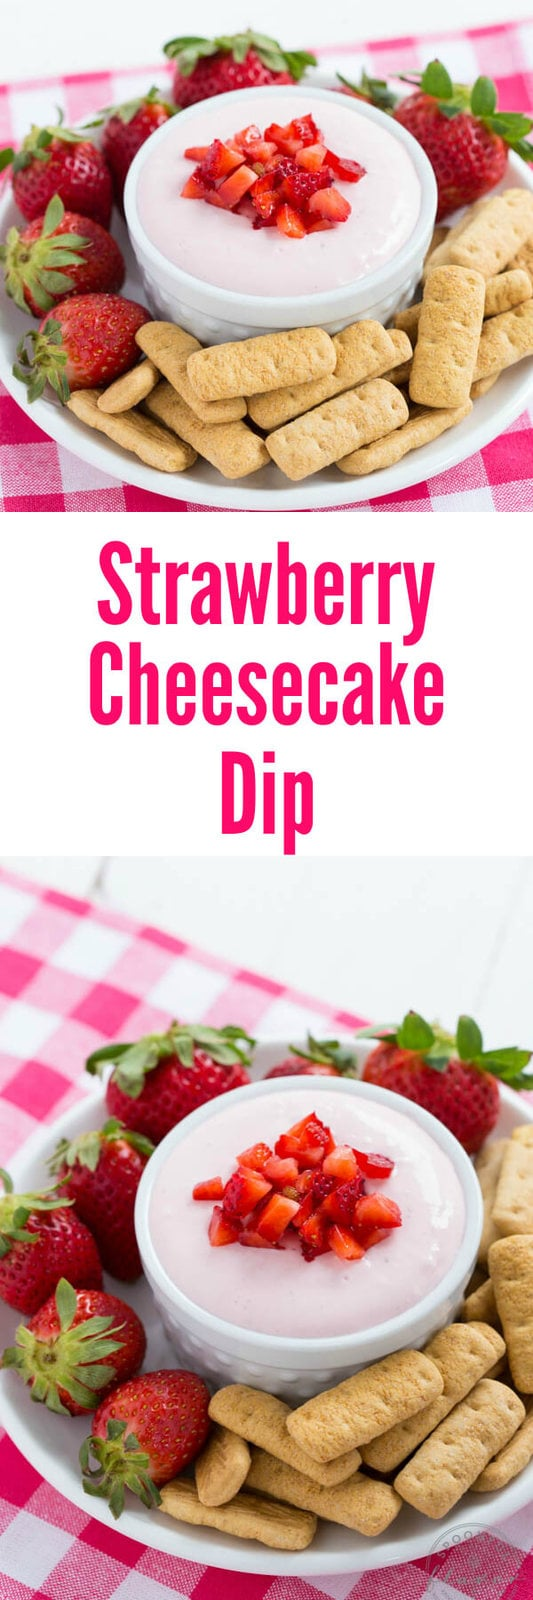 Strawberry Cheesecake Dip - made with fresh strawberries!